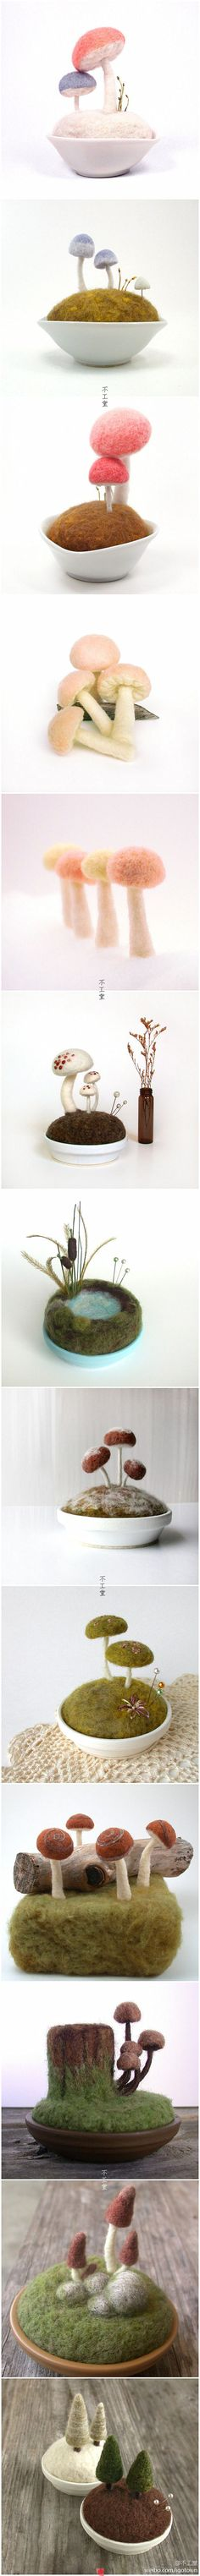 The  perfect place for little felted woodland creatures to live.